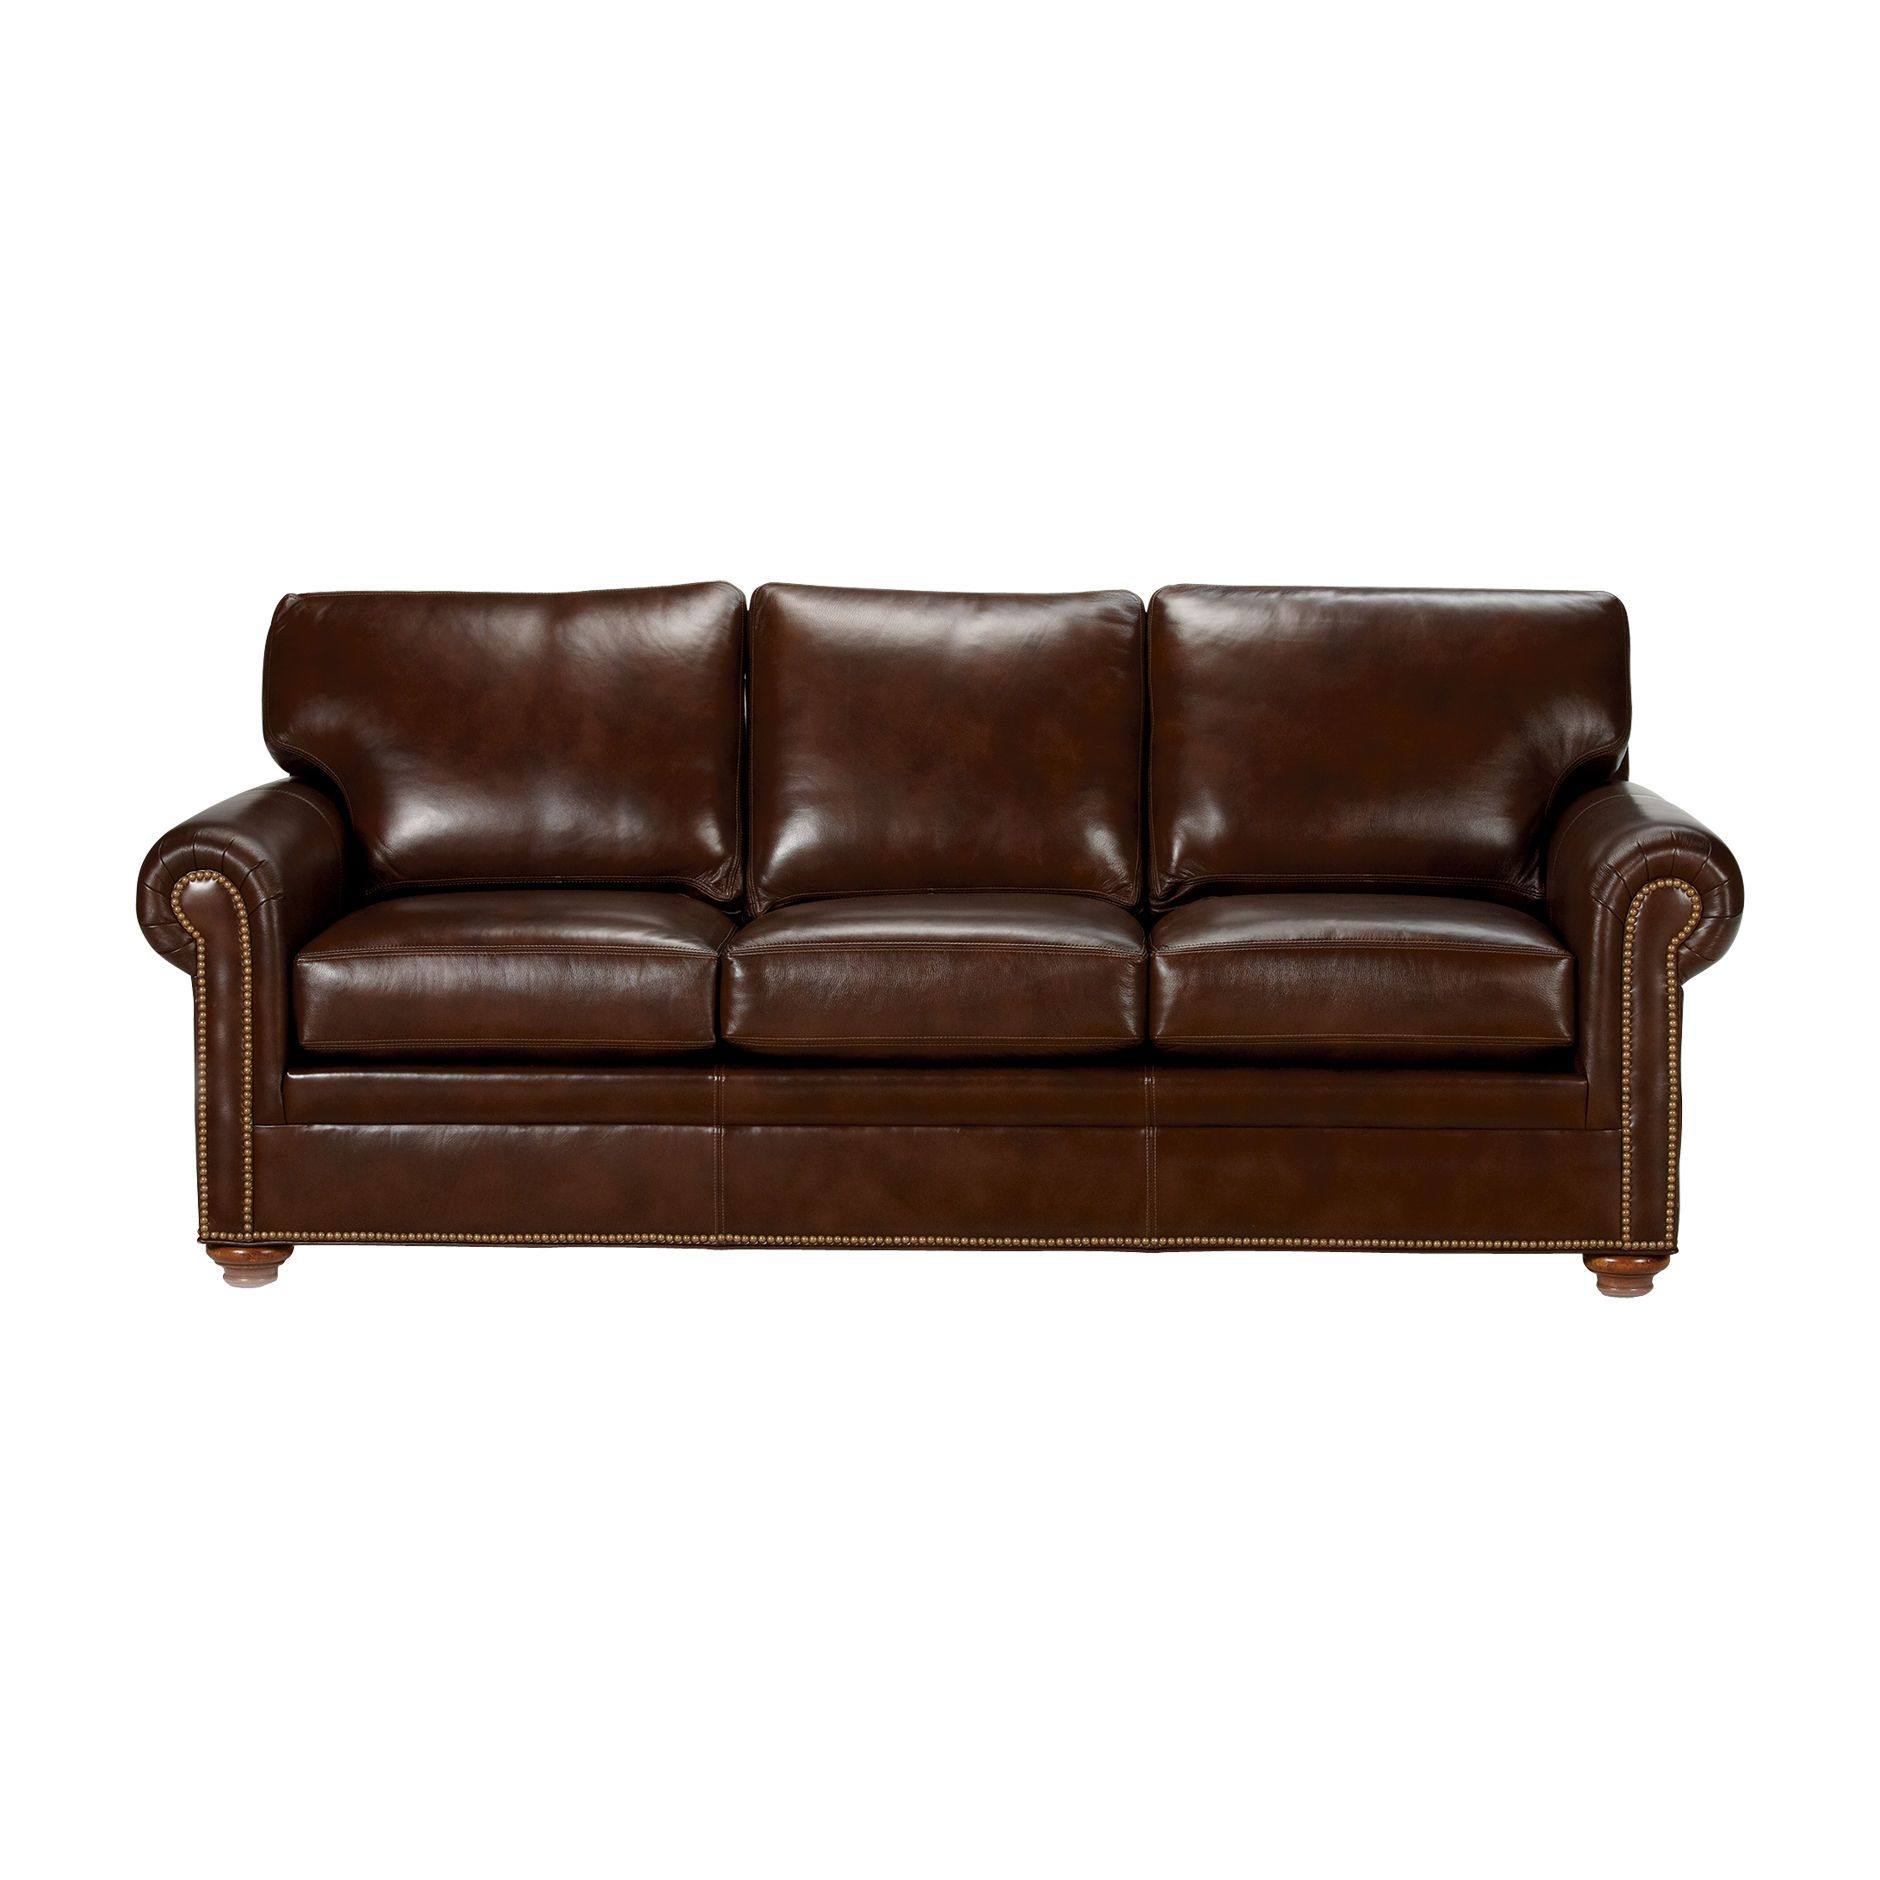 Conor Leather Sofa Omni Brown Ethan Allen Us For The